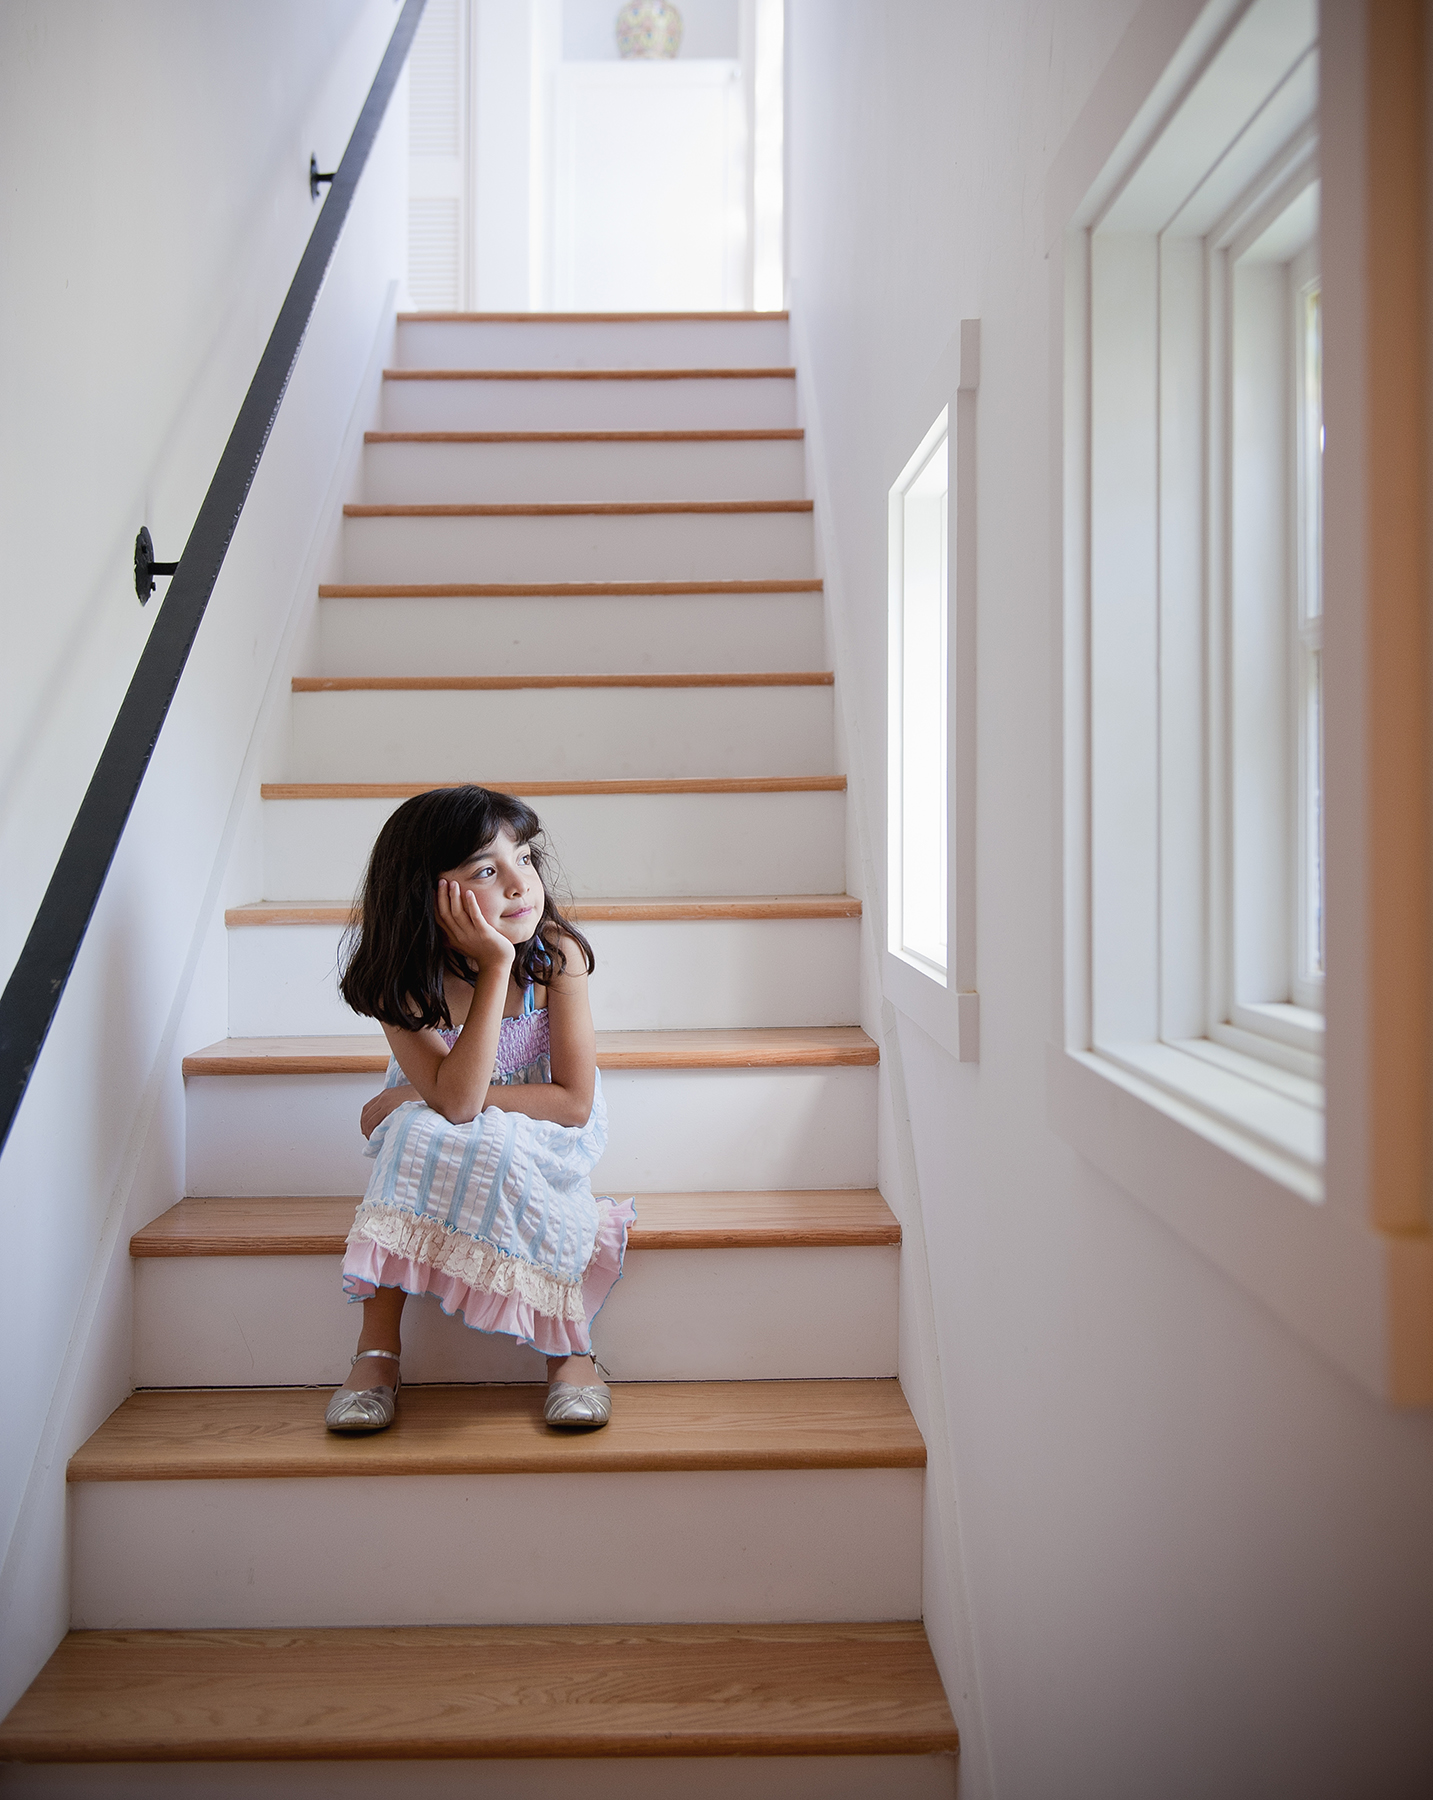 Girl sitting on the stairs looking out window